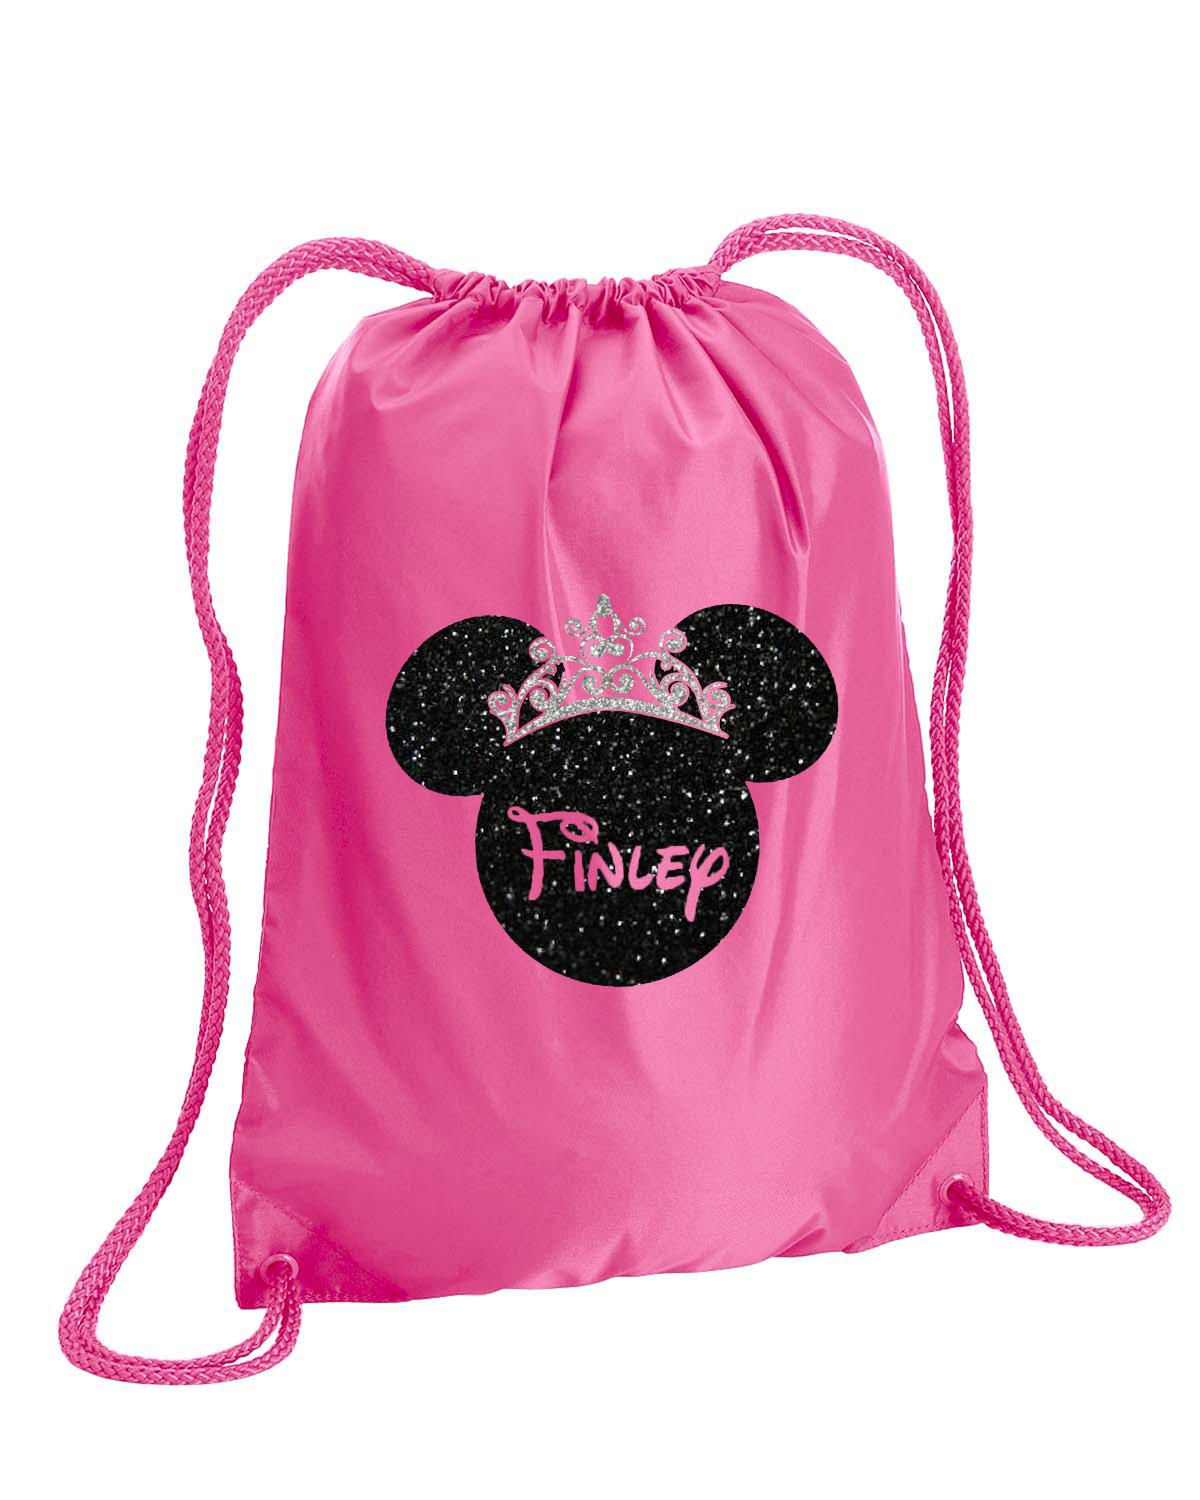 Minnie Mouse Bag Silver Glitter Drawstring Disney Cheer Backpack